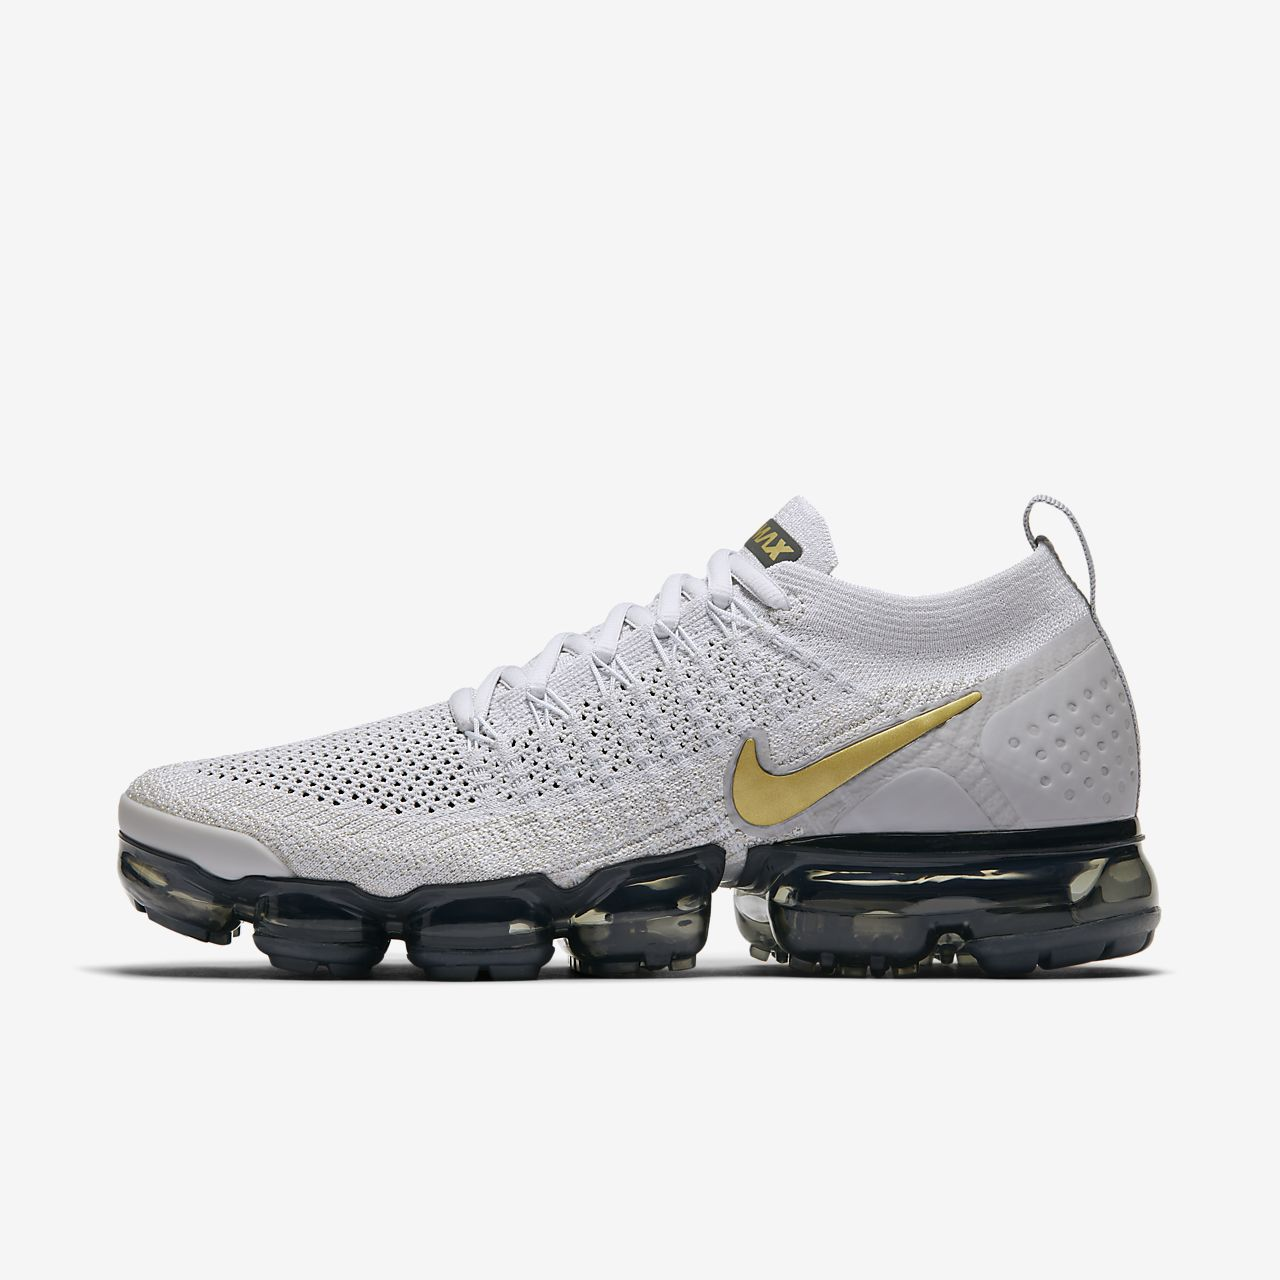 separation shoes 180b4 60867 ... Chaussure Nike Air VaporMax Flyknit 2 pour Femme